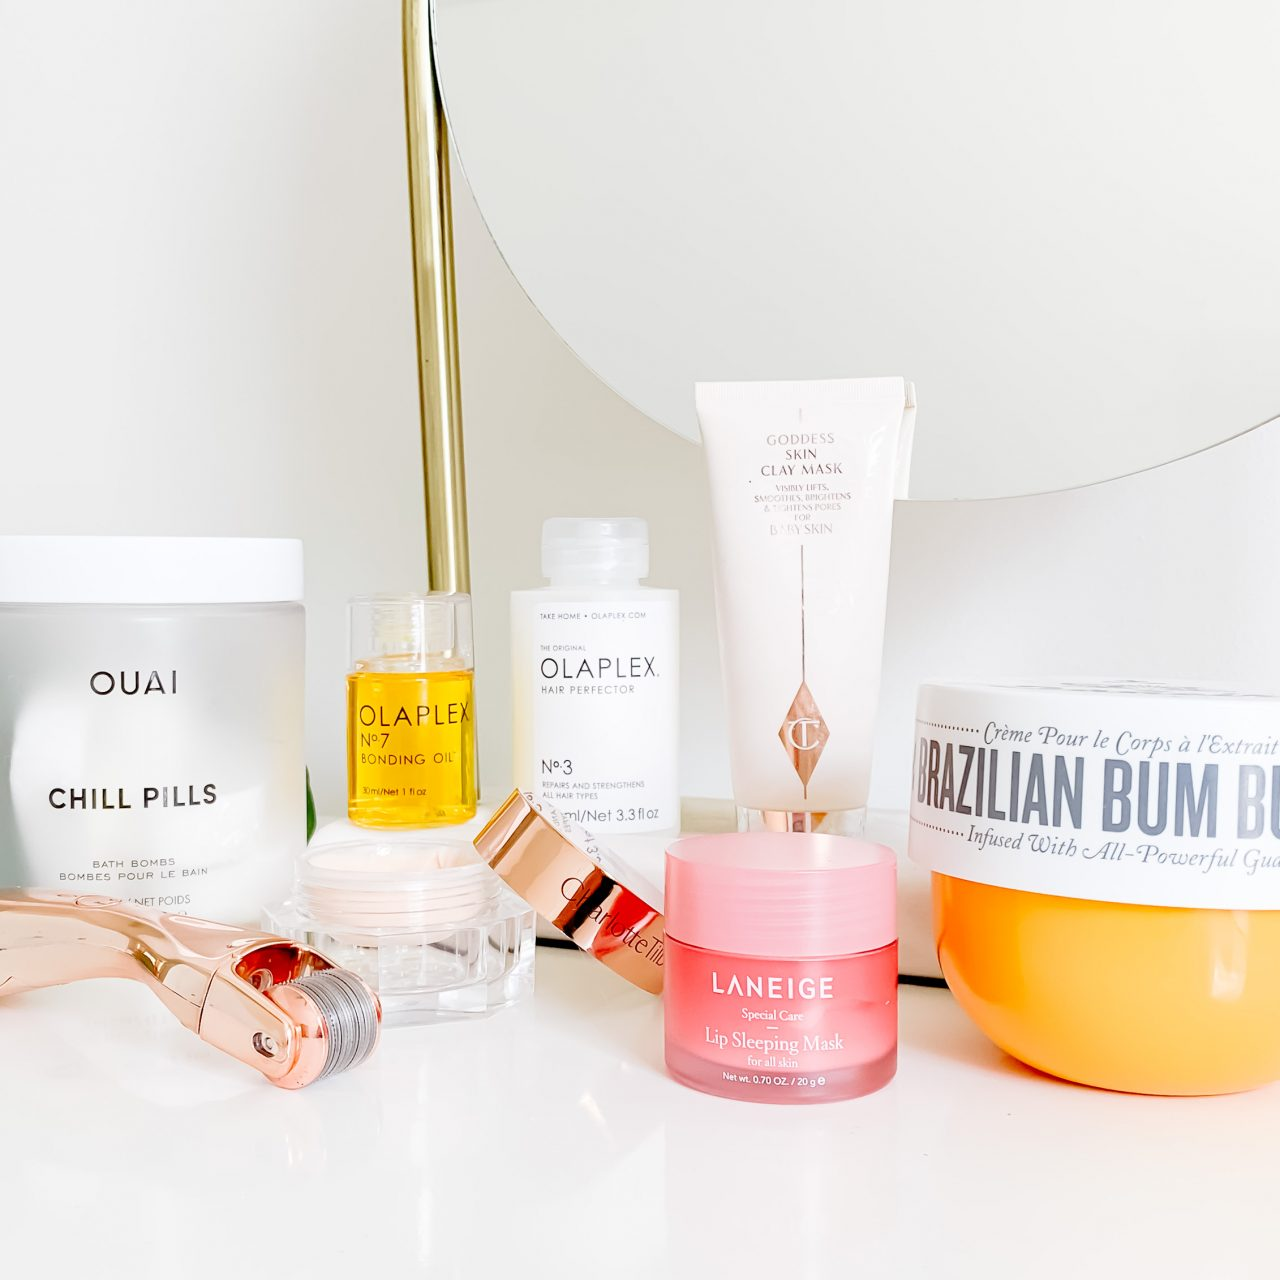 MY FAVORITE SELF CARE BEAUTY PRODUCTS  FROM SEPHORA